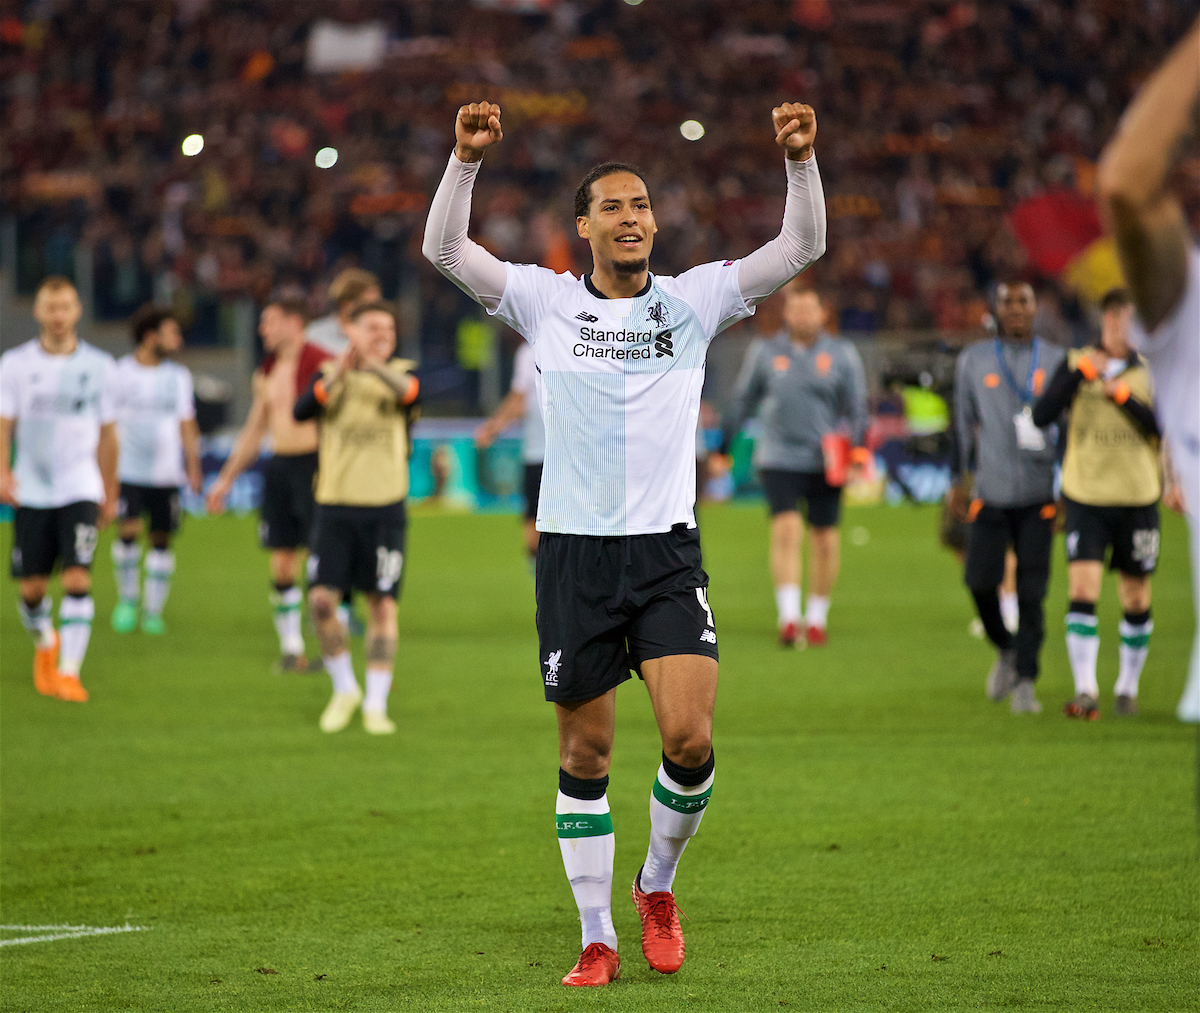 ROME, ITALY - Wednesday, May 2, 2018: Liverpool's Virgil van Dijk celebrates after the 7-6 aggregate victory over AS Roma during the UEFA Champions League Semi-Final 2nd Leg match between AS Roma and Liverpool FC at the Stadio Olimpico. (Pic by David Rawcliffe/Propaganda)